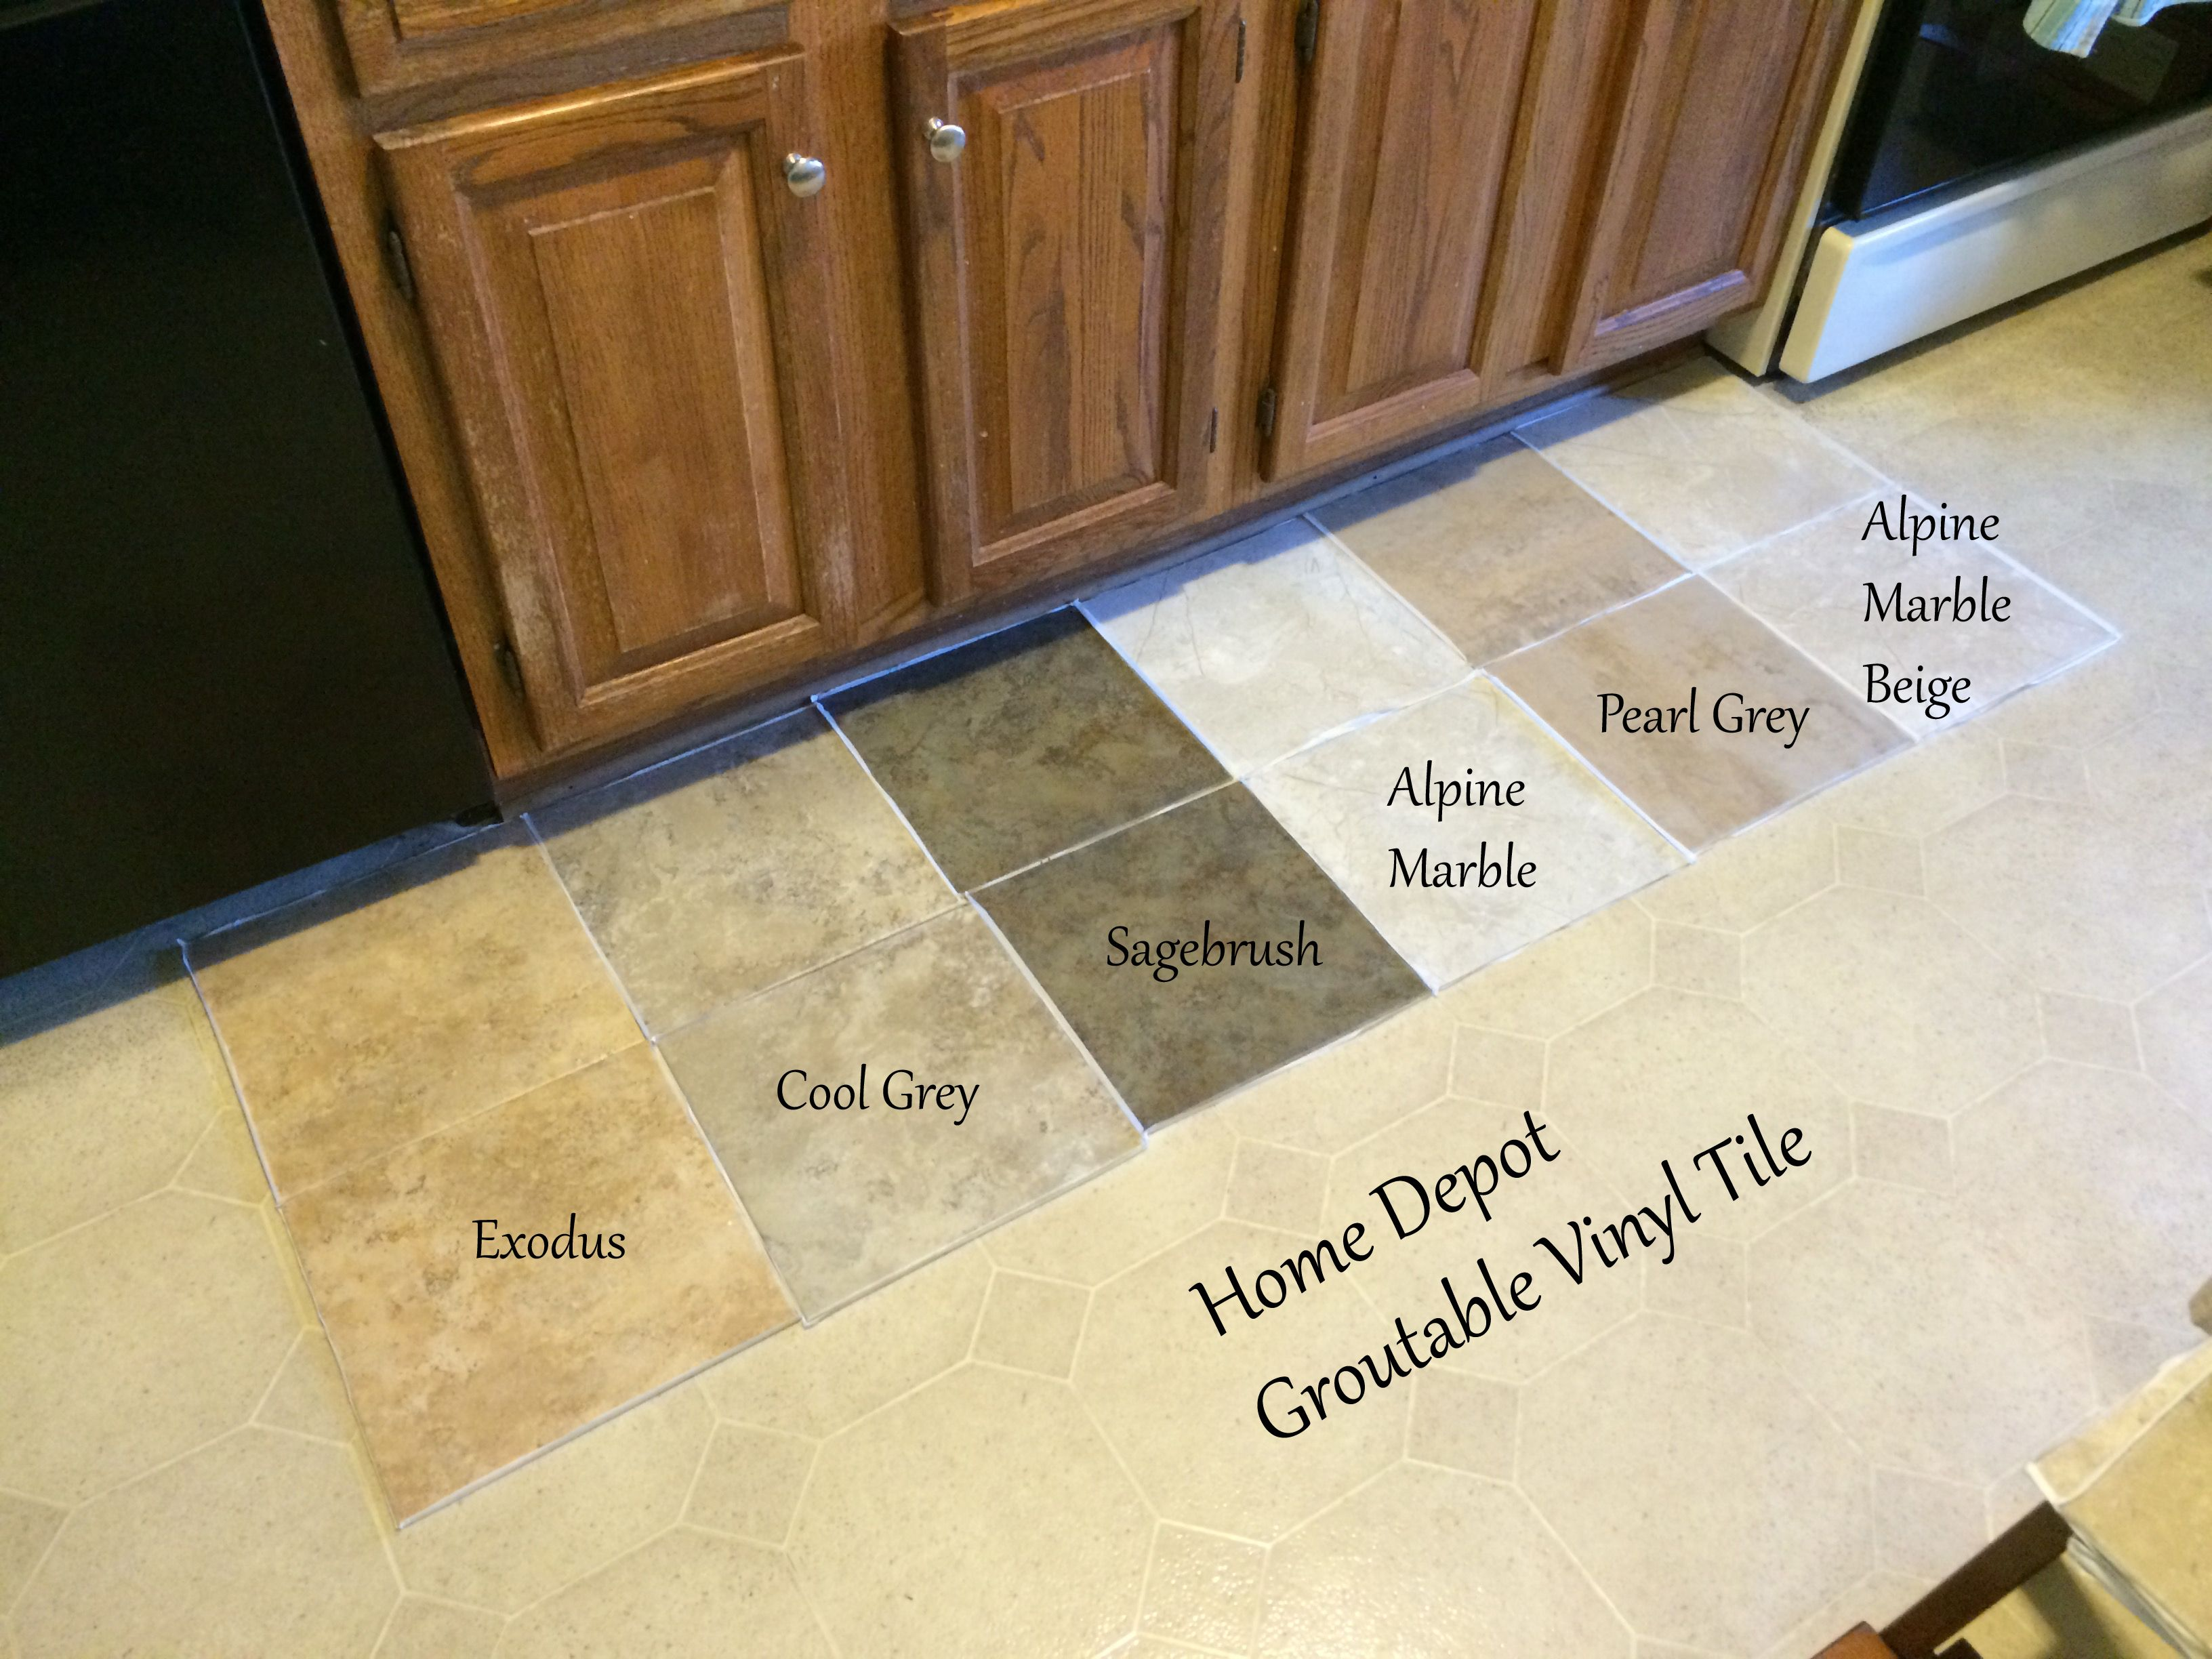 Laying Kitchen Floor Tiles 17 Best Images About Tile Laying On Pinterest Vinyls Linoleum